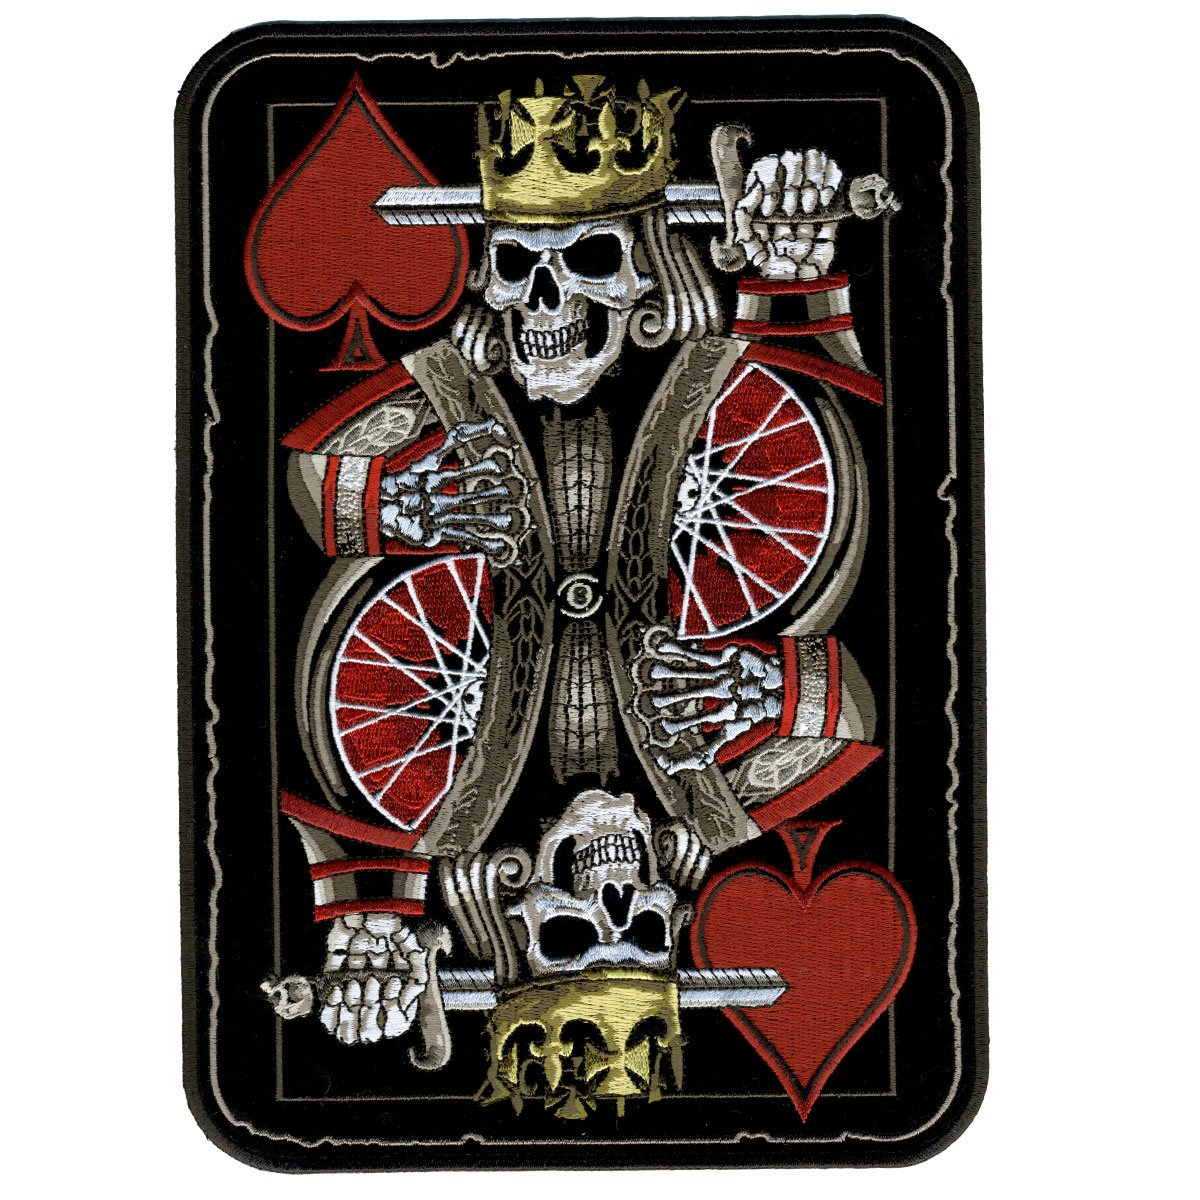 Hot Leathers, SUICIDE KING, Iron-On / Saw-On Rayon PATCH - 7